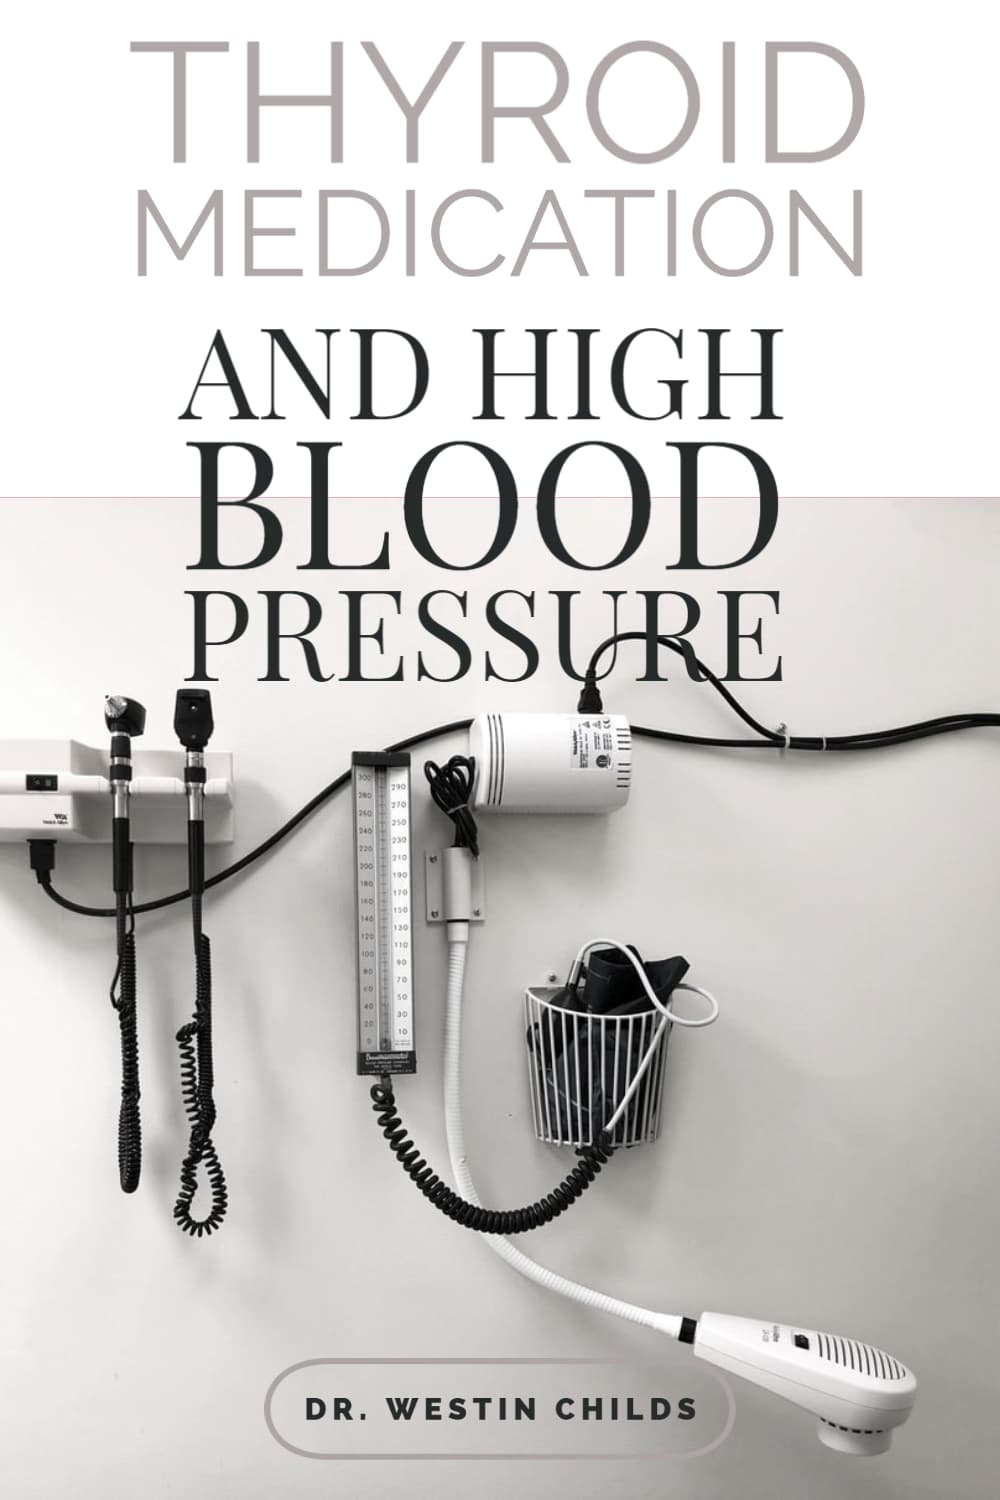 thyroid medication and high blood pressure